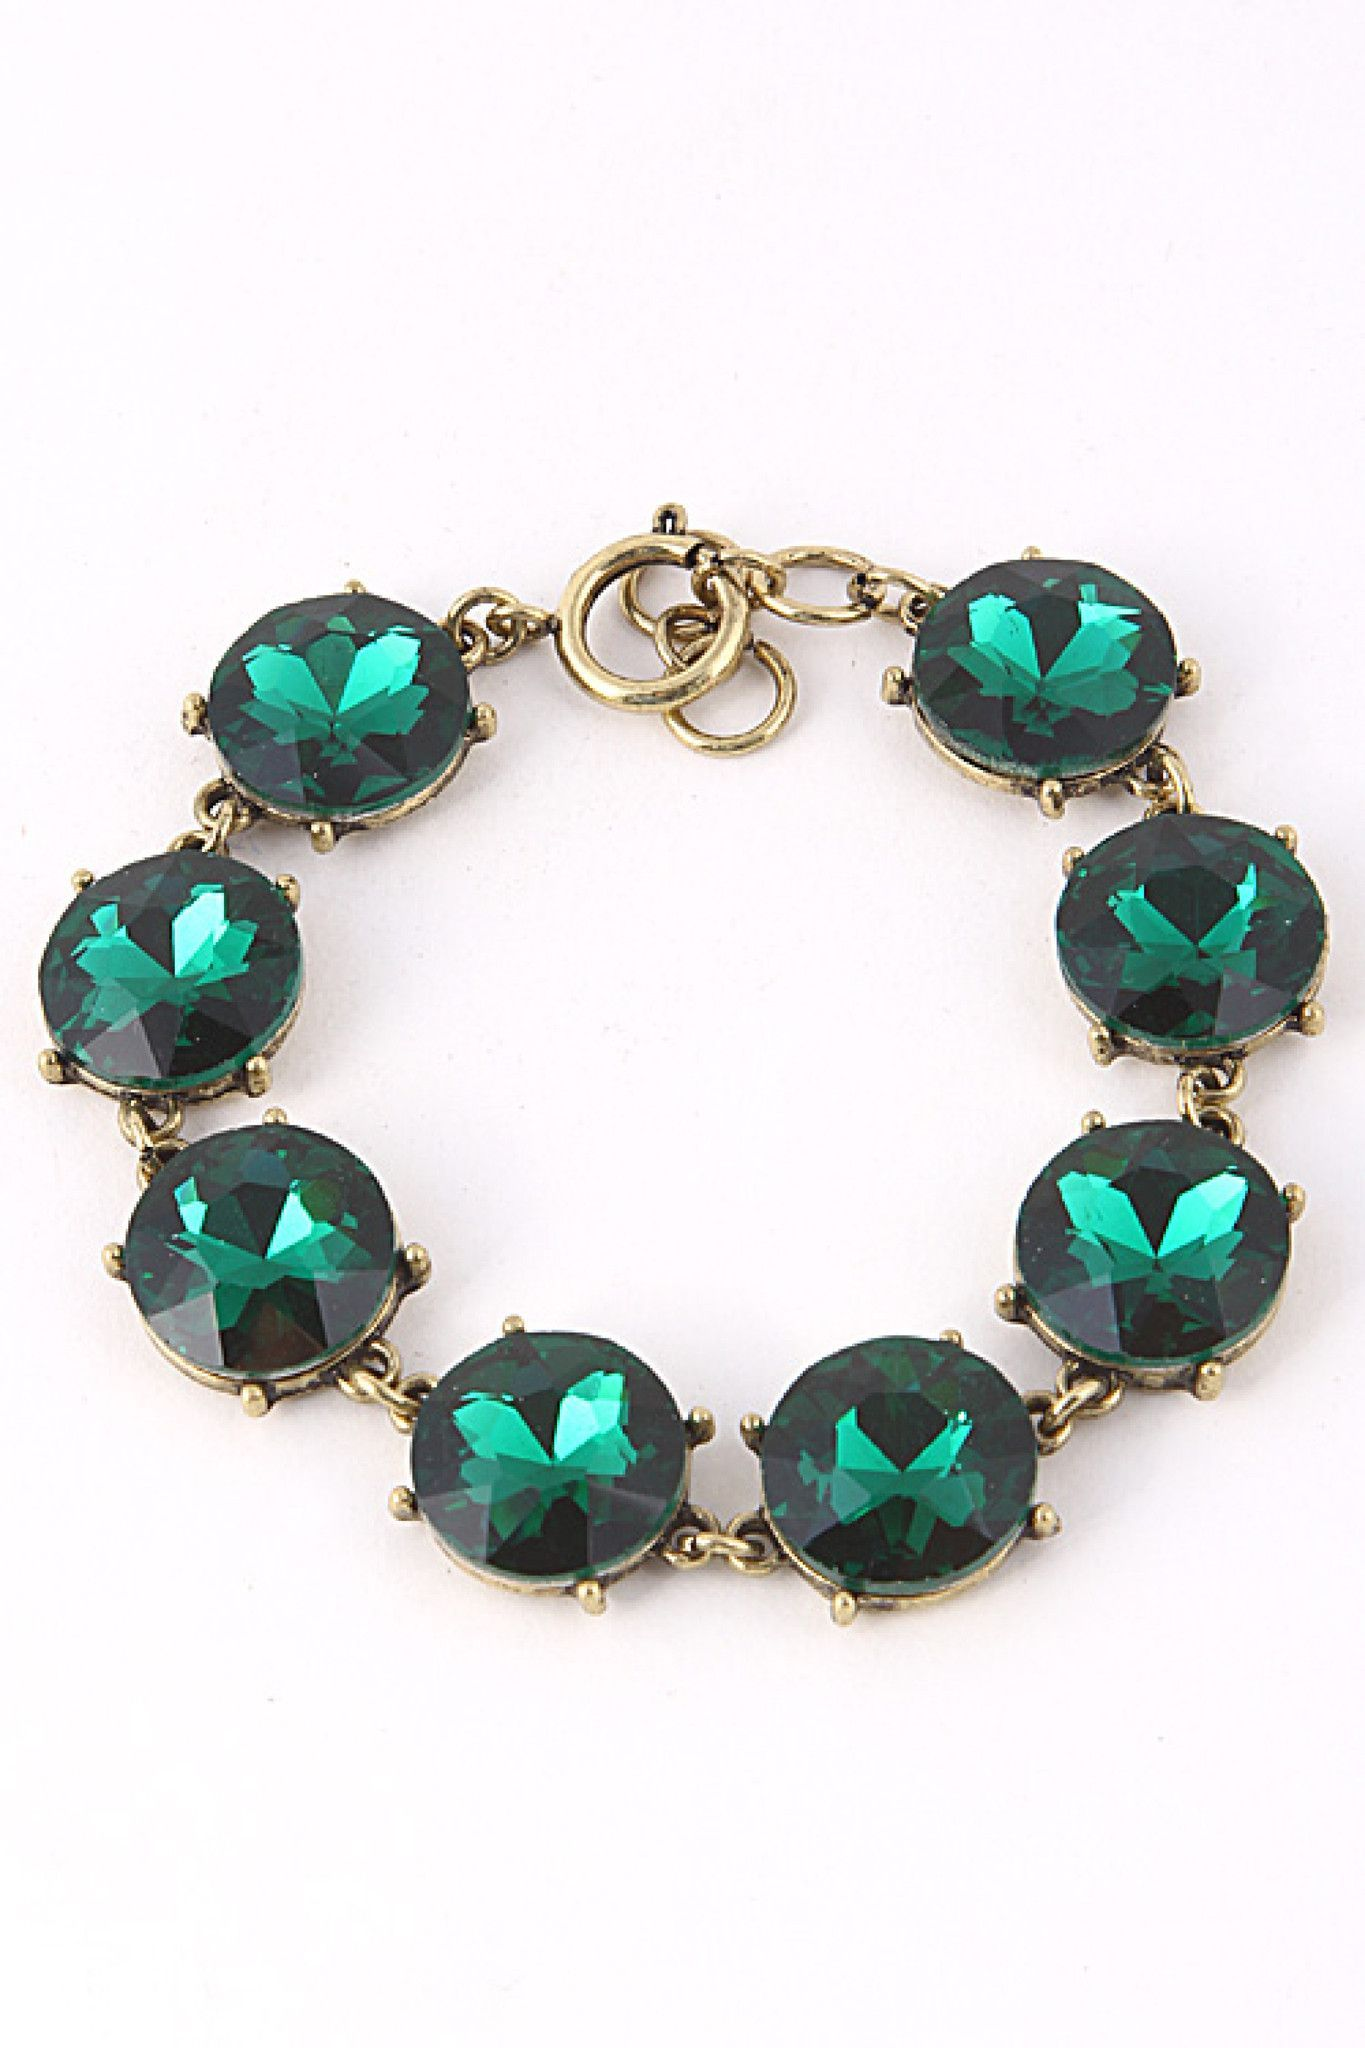 Crystal Link Bracelet in Multi Colors Bracelets Minis and Jewelry